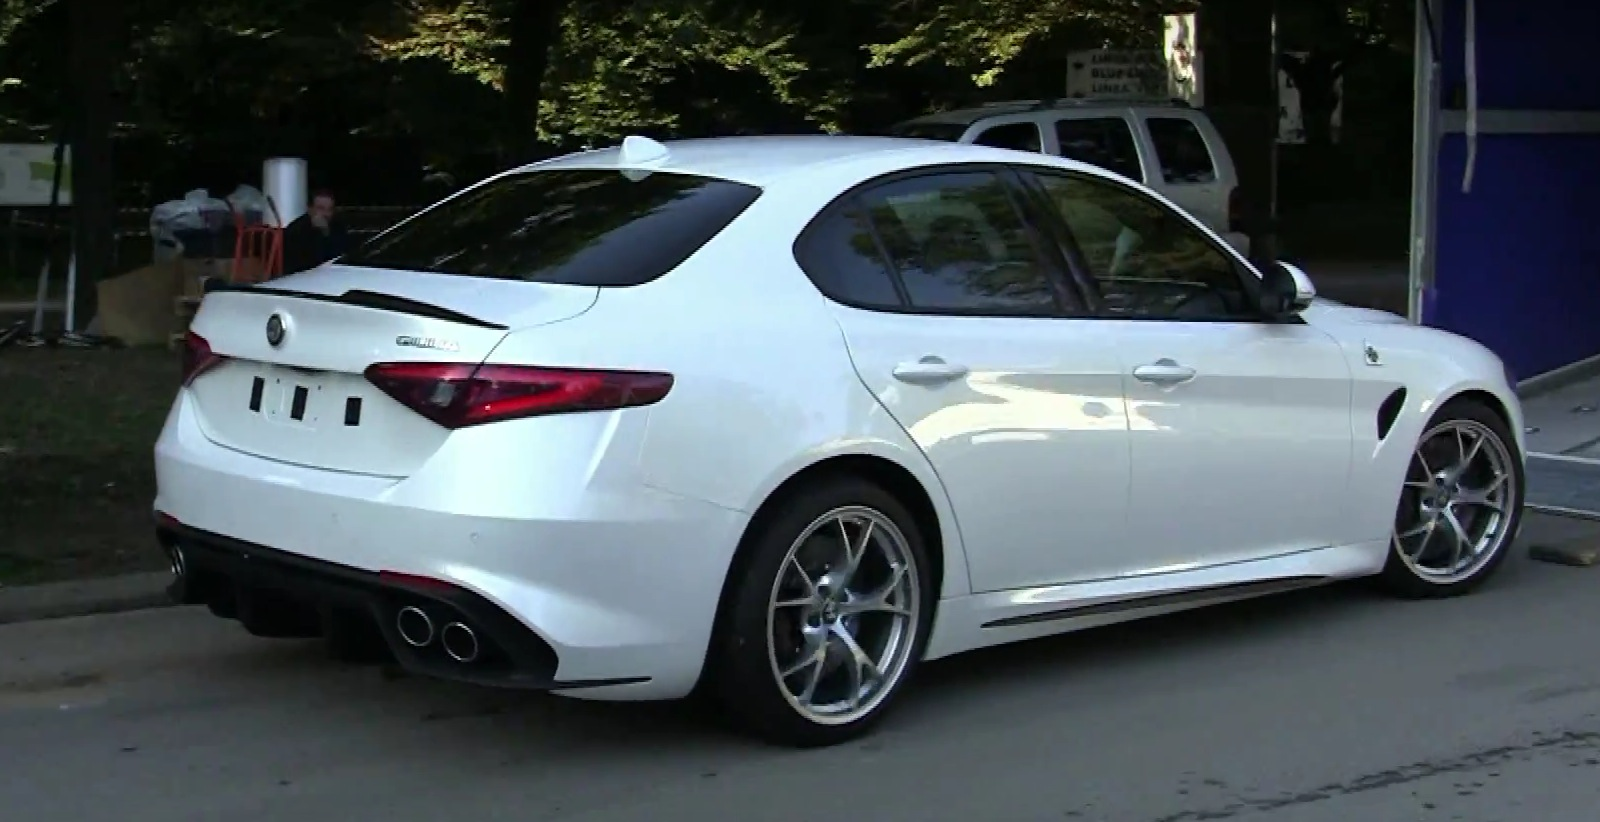 Alfa Romeo Giulia QV Cold Engine Start Reveals Maserati,Like